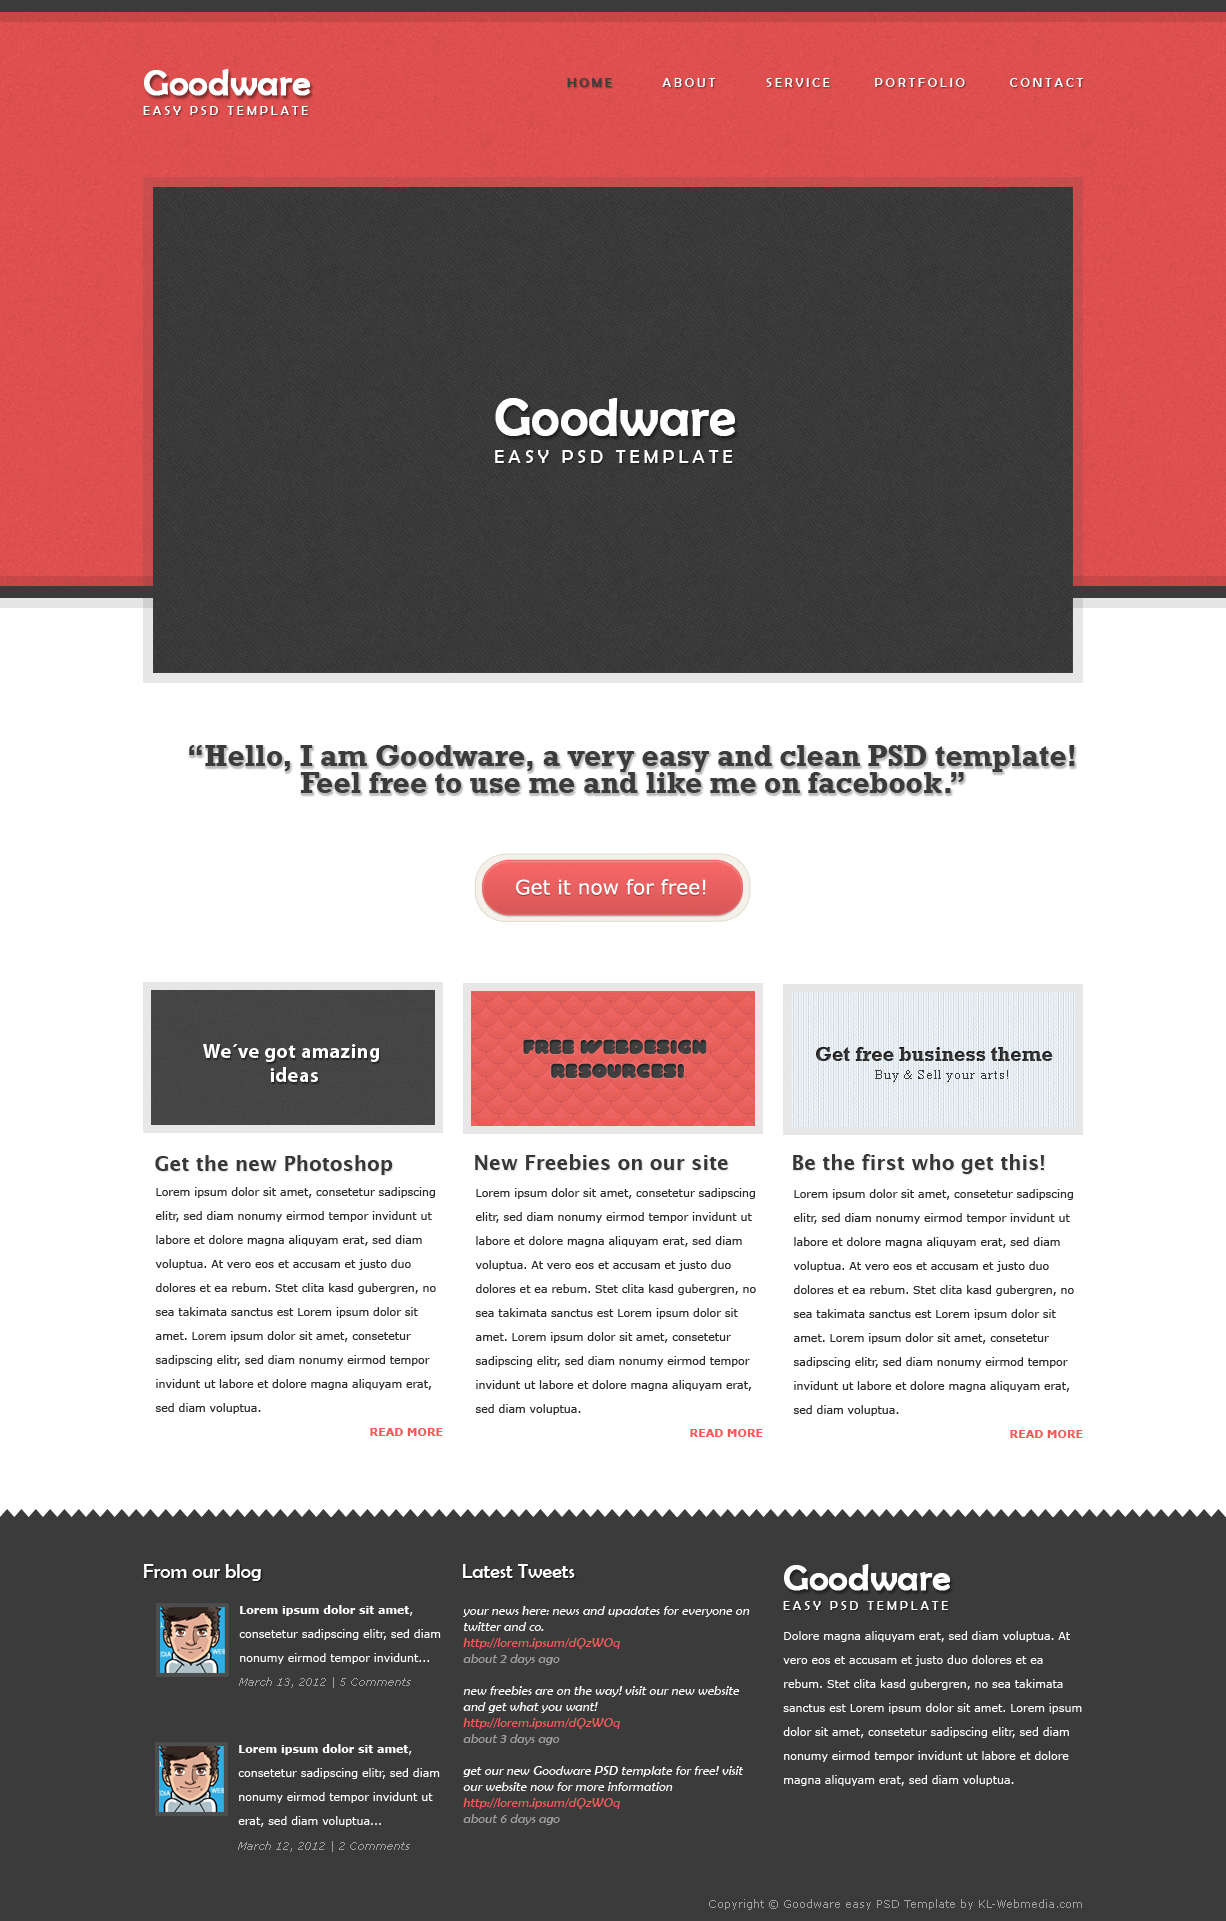 Goodware easy PSD template by KL-Webmedia